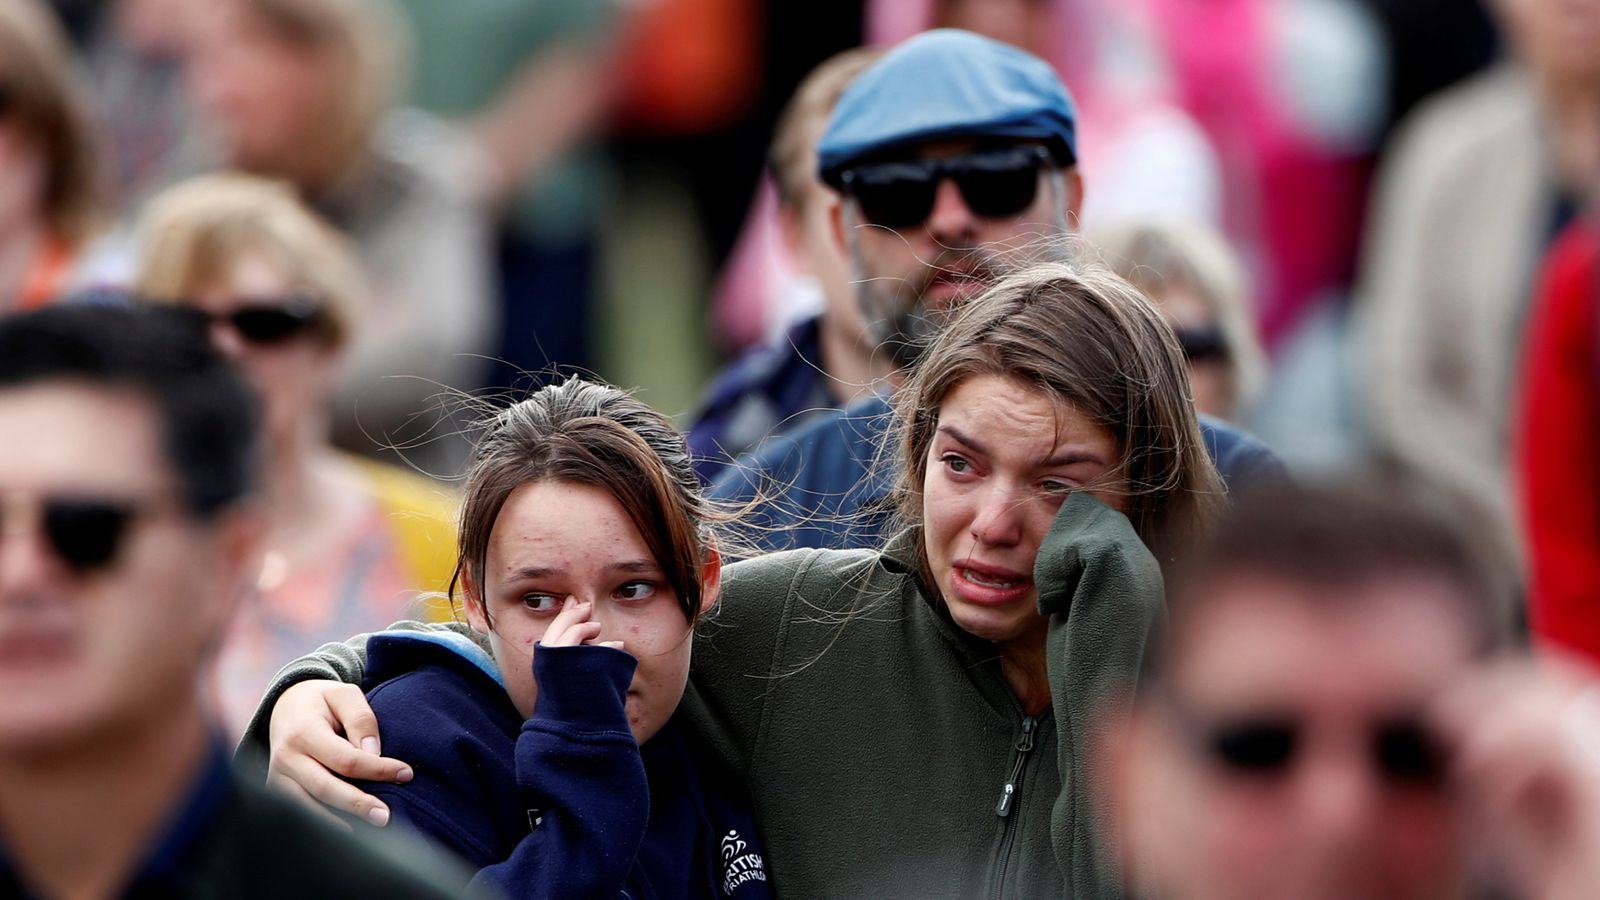 New Zealand Attack: New Zealand: Names Of 50 Killed In Terror Attack Read Out